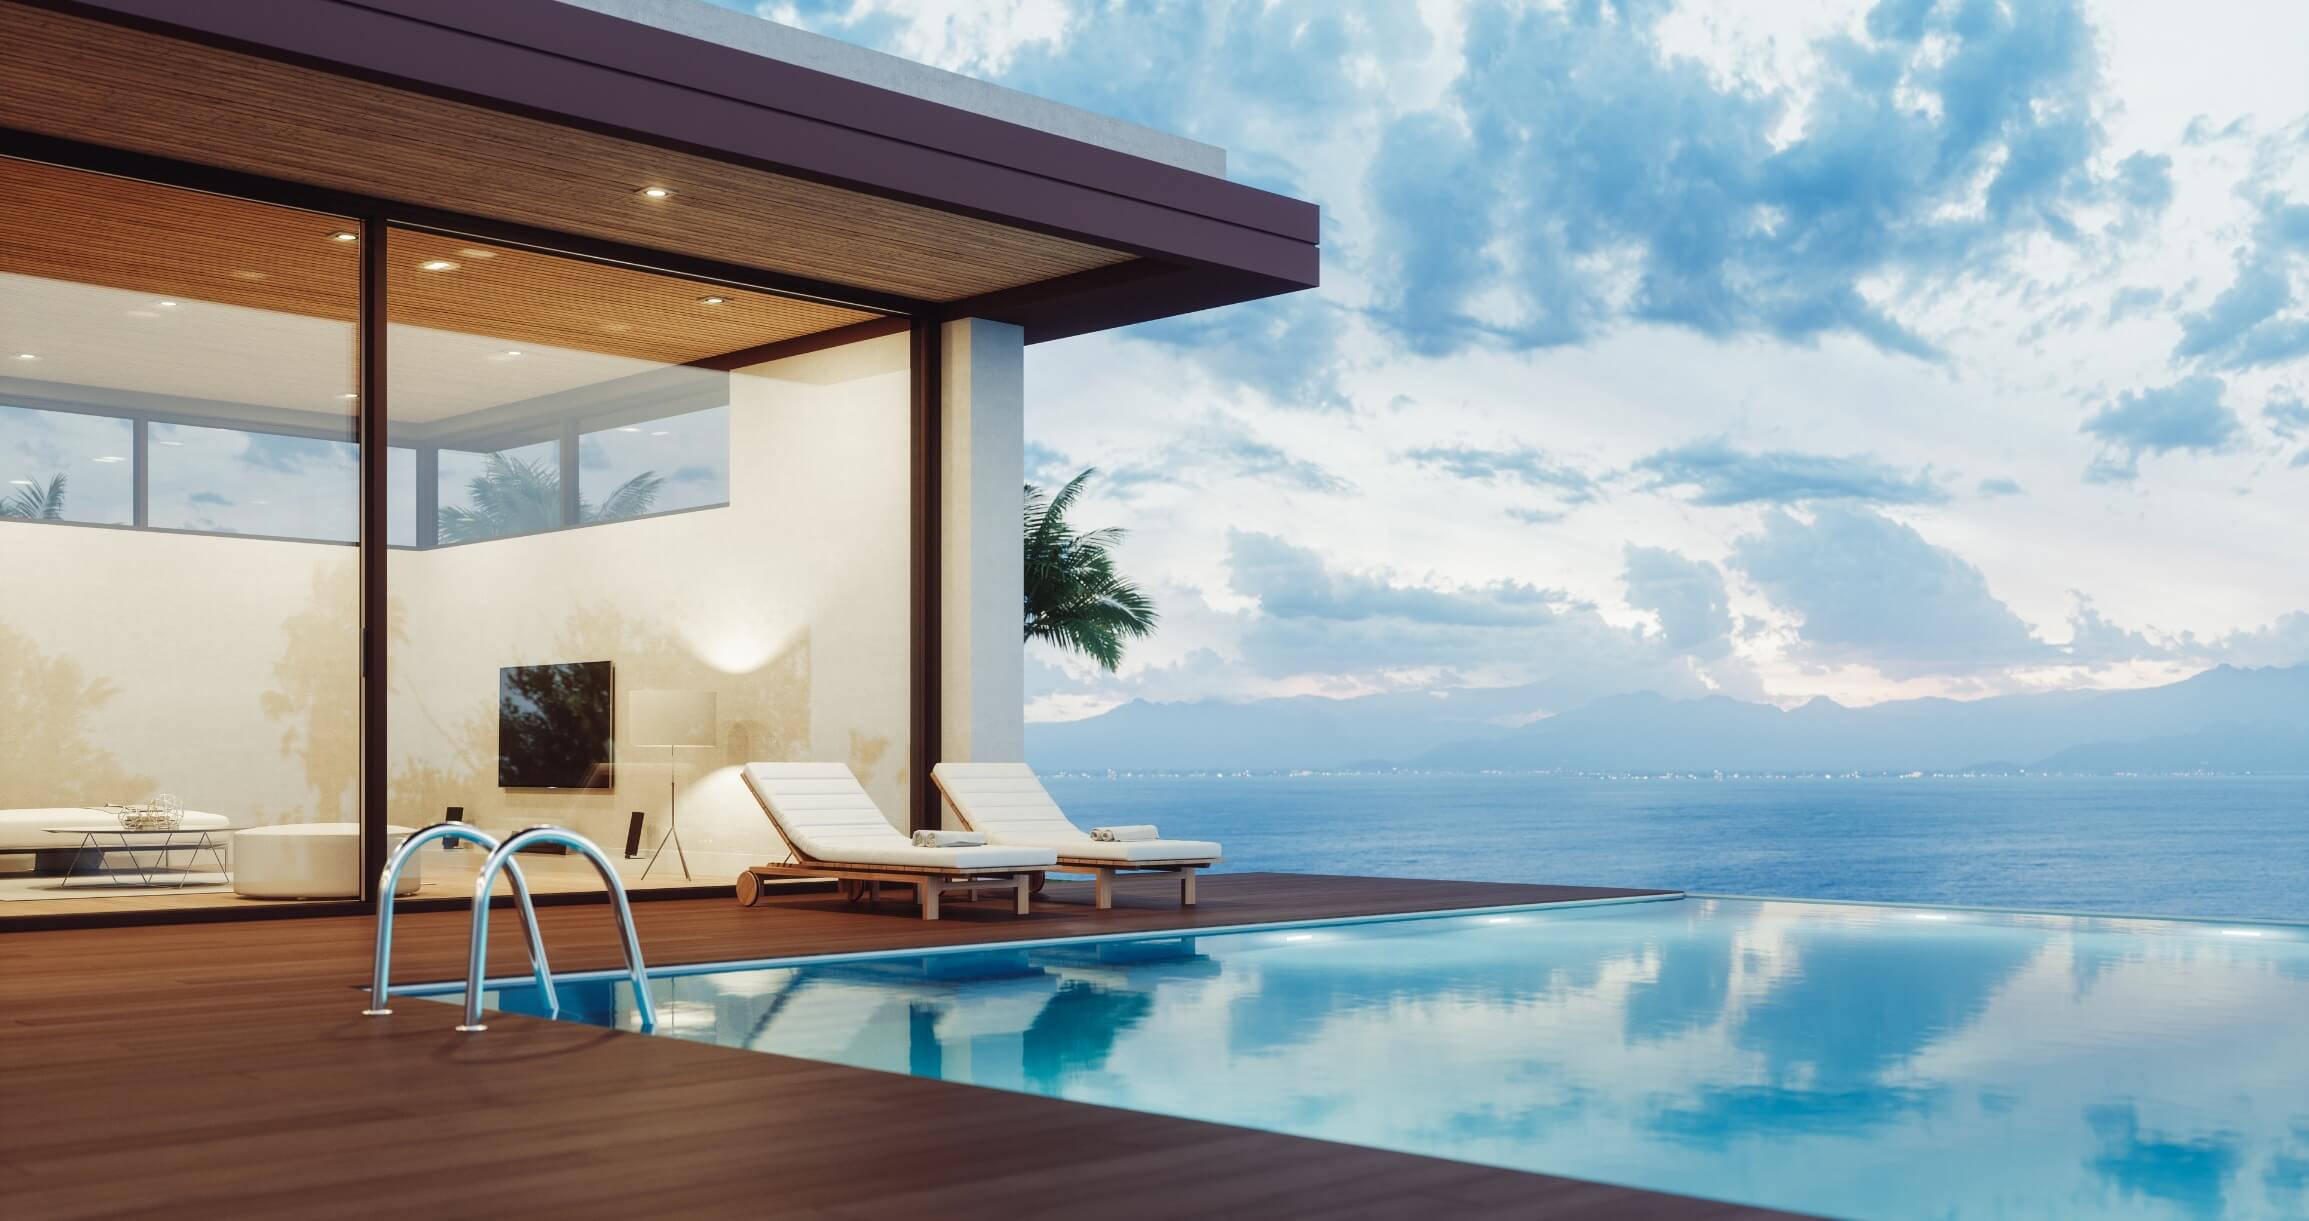 4 Modern Renovation Ideas For Your Vacation Home